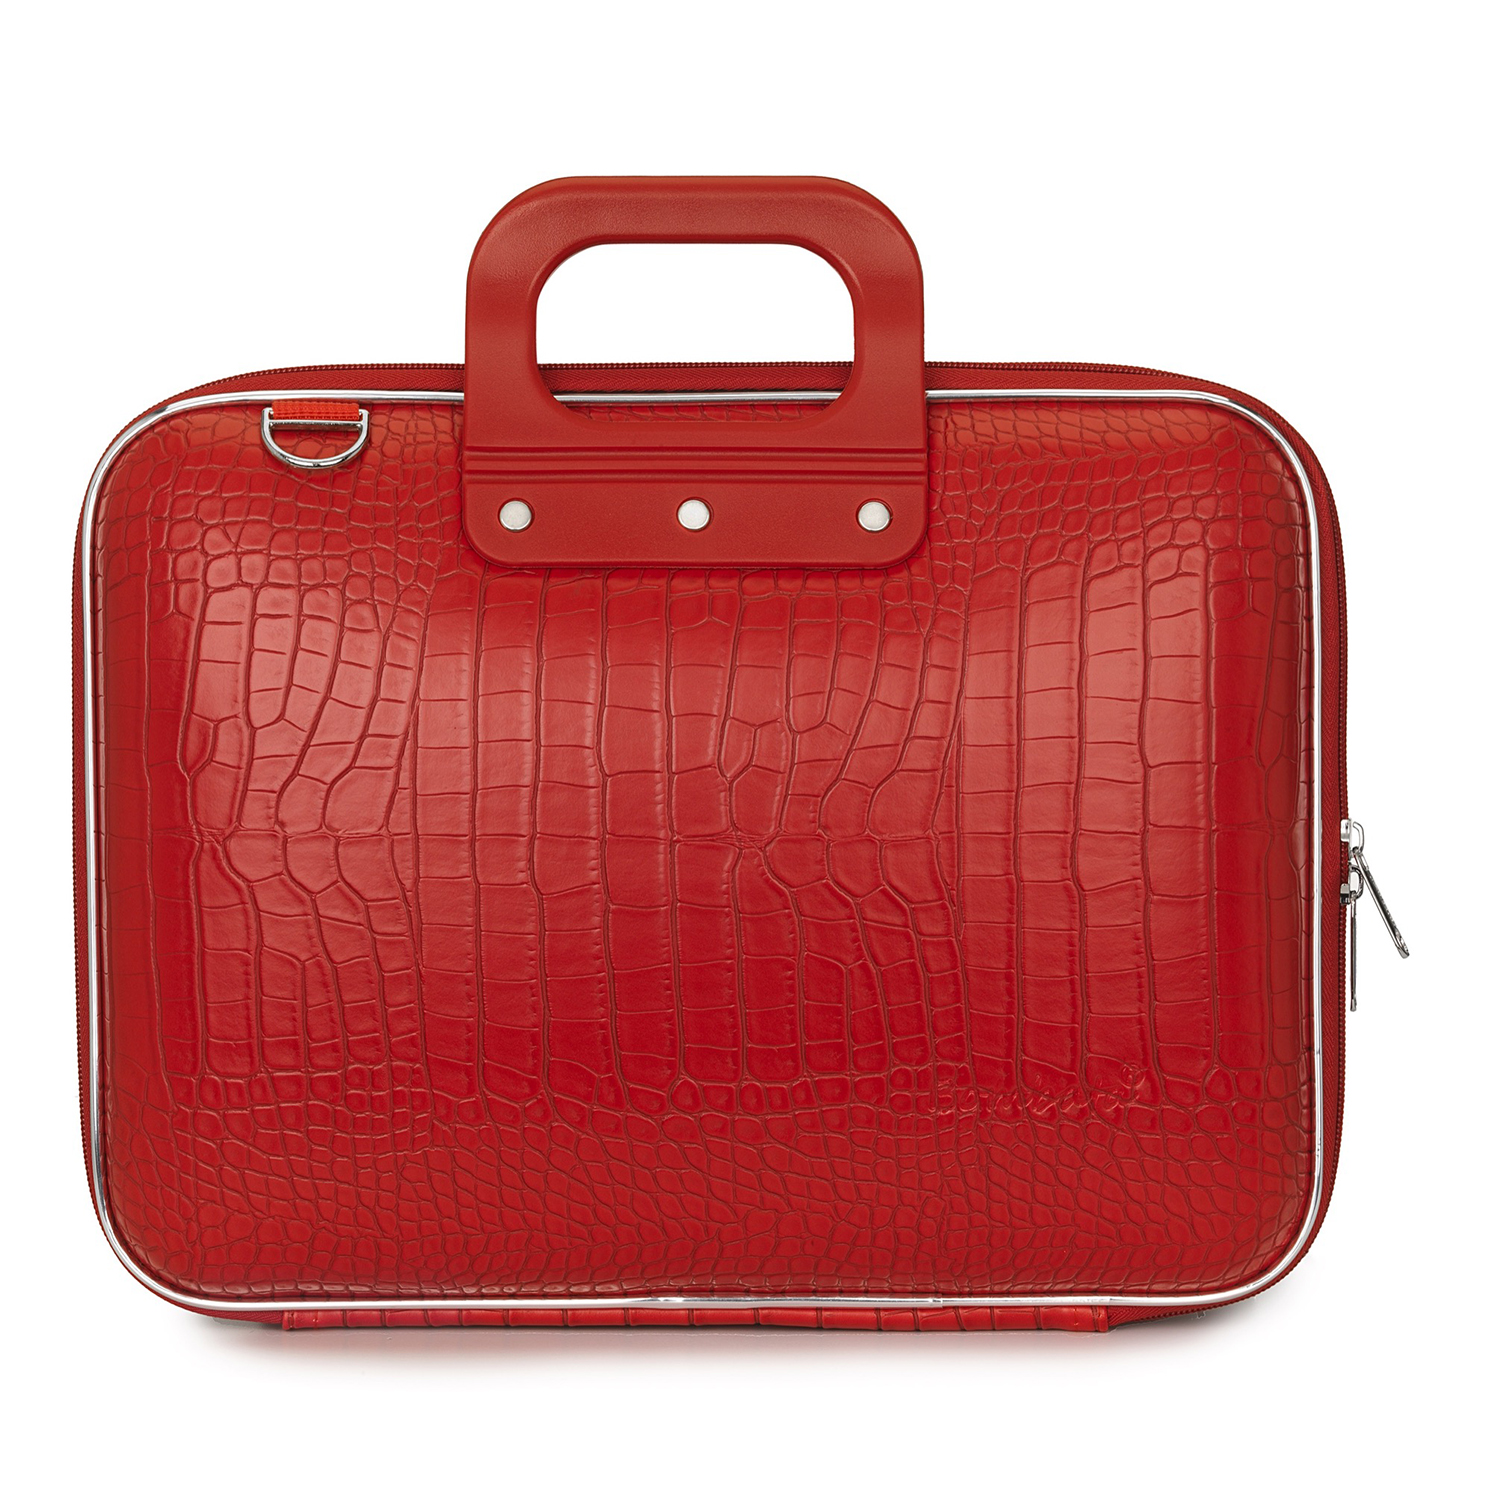 Bombata – Bright Red Medio Cocco 13″ Laptop Case/Bag with Shoulder Strap